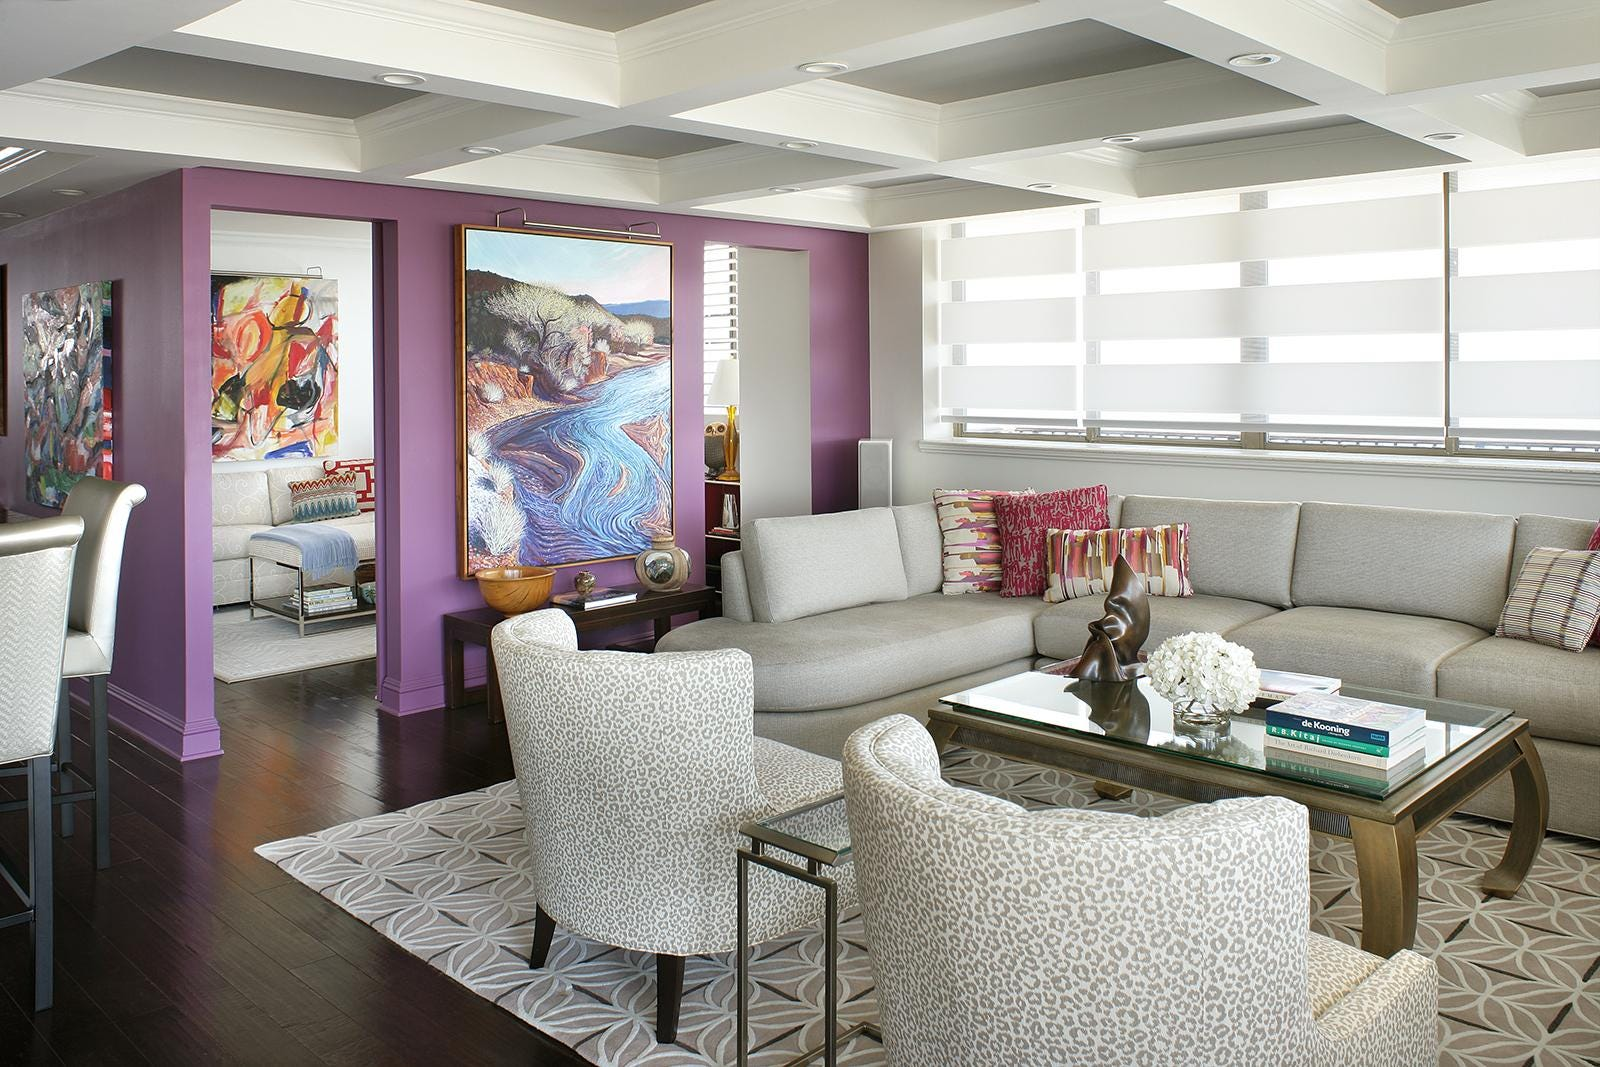 Motorized Blinds Can Protect Furniture And Reduce Energy Consumption In  Summer. (Photo: COURTESY OF Peter Rymwid)